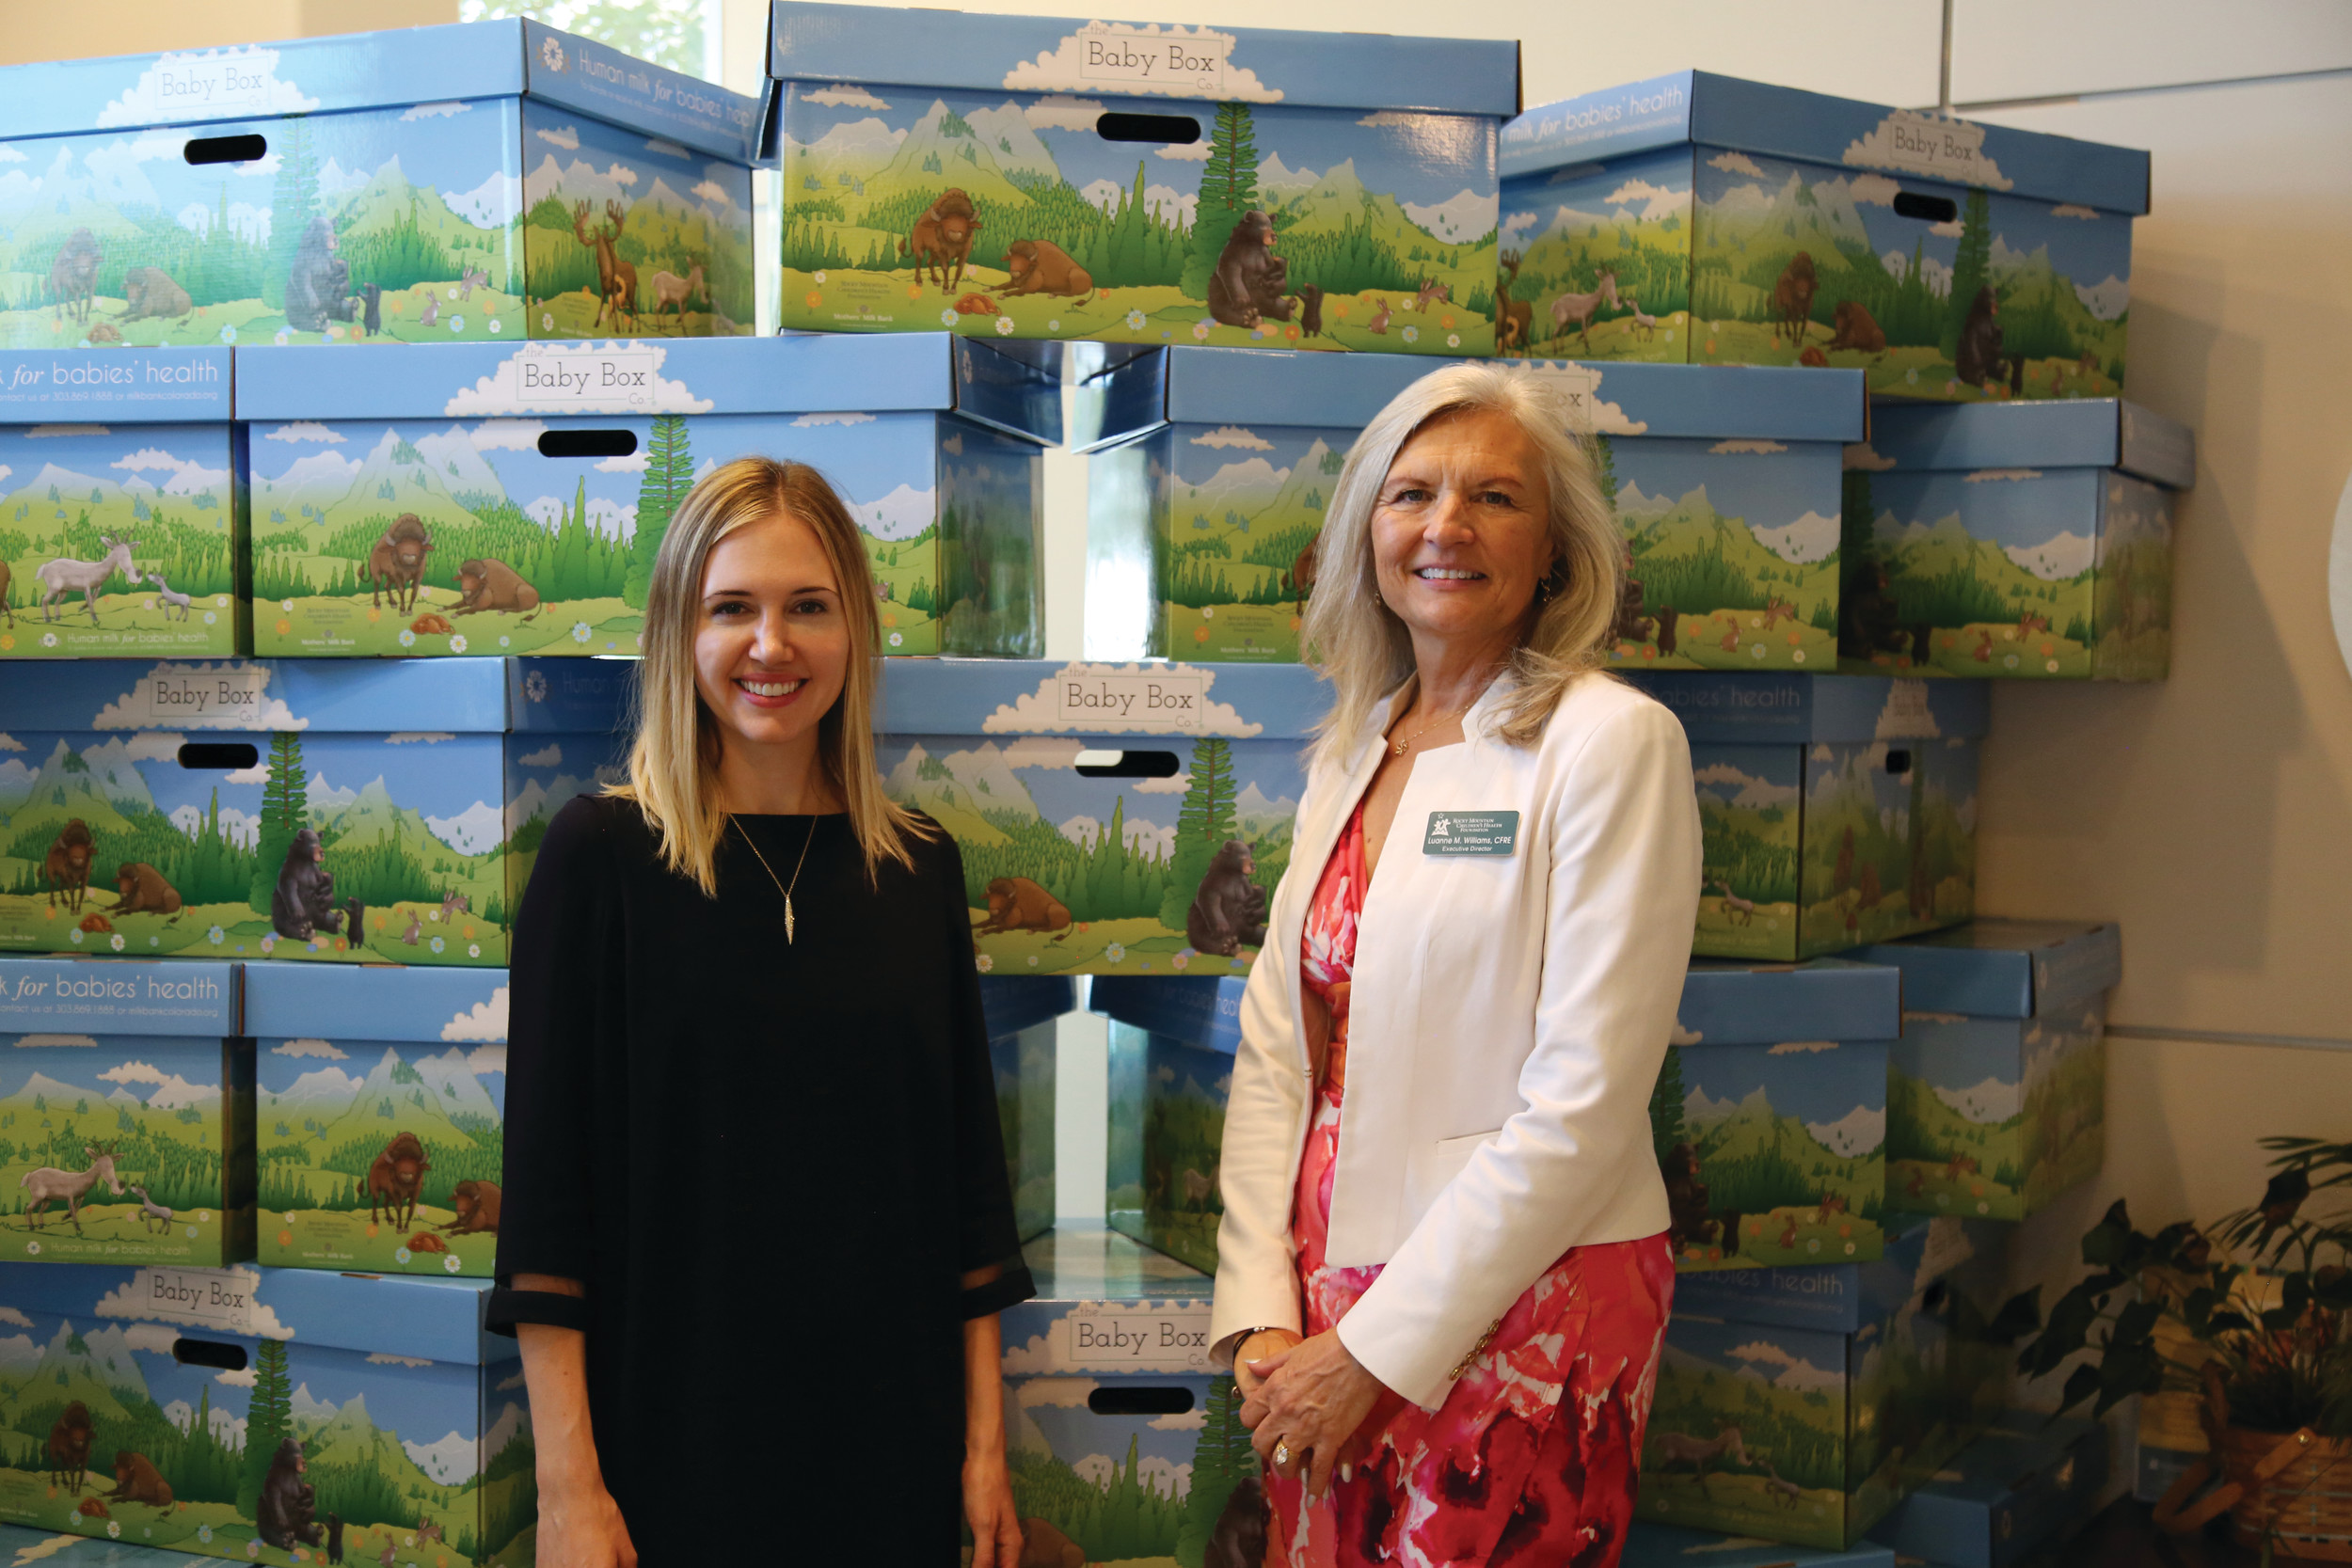 Michelle Vick, co-founder of The Baby Box Co., left, and Luanne Williams, executive director of Rocky Mountain Children's Health Foundation, stand in front of the first shipment of Baby Boxes for new Colorado parents.